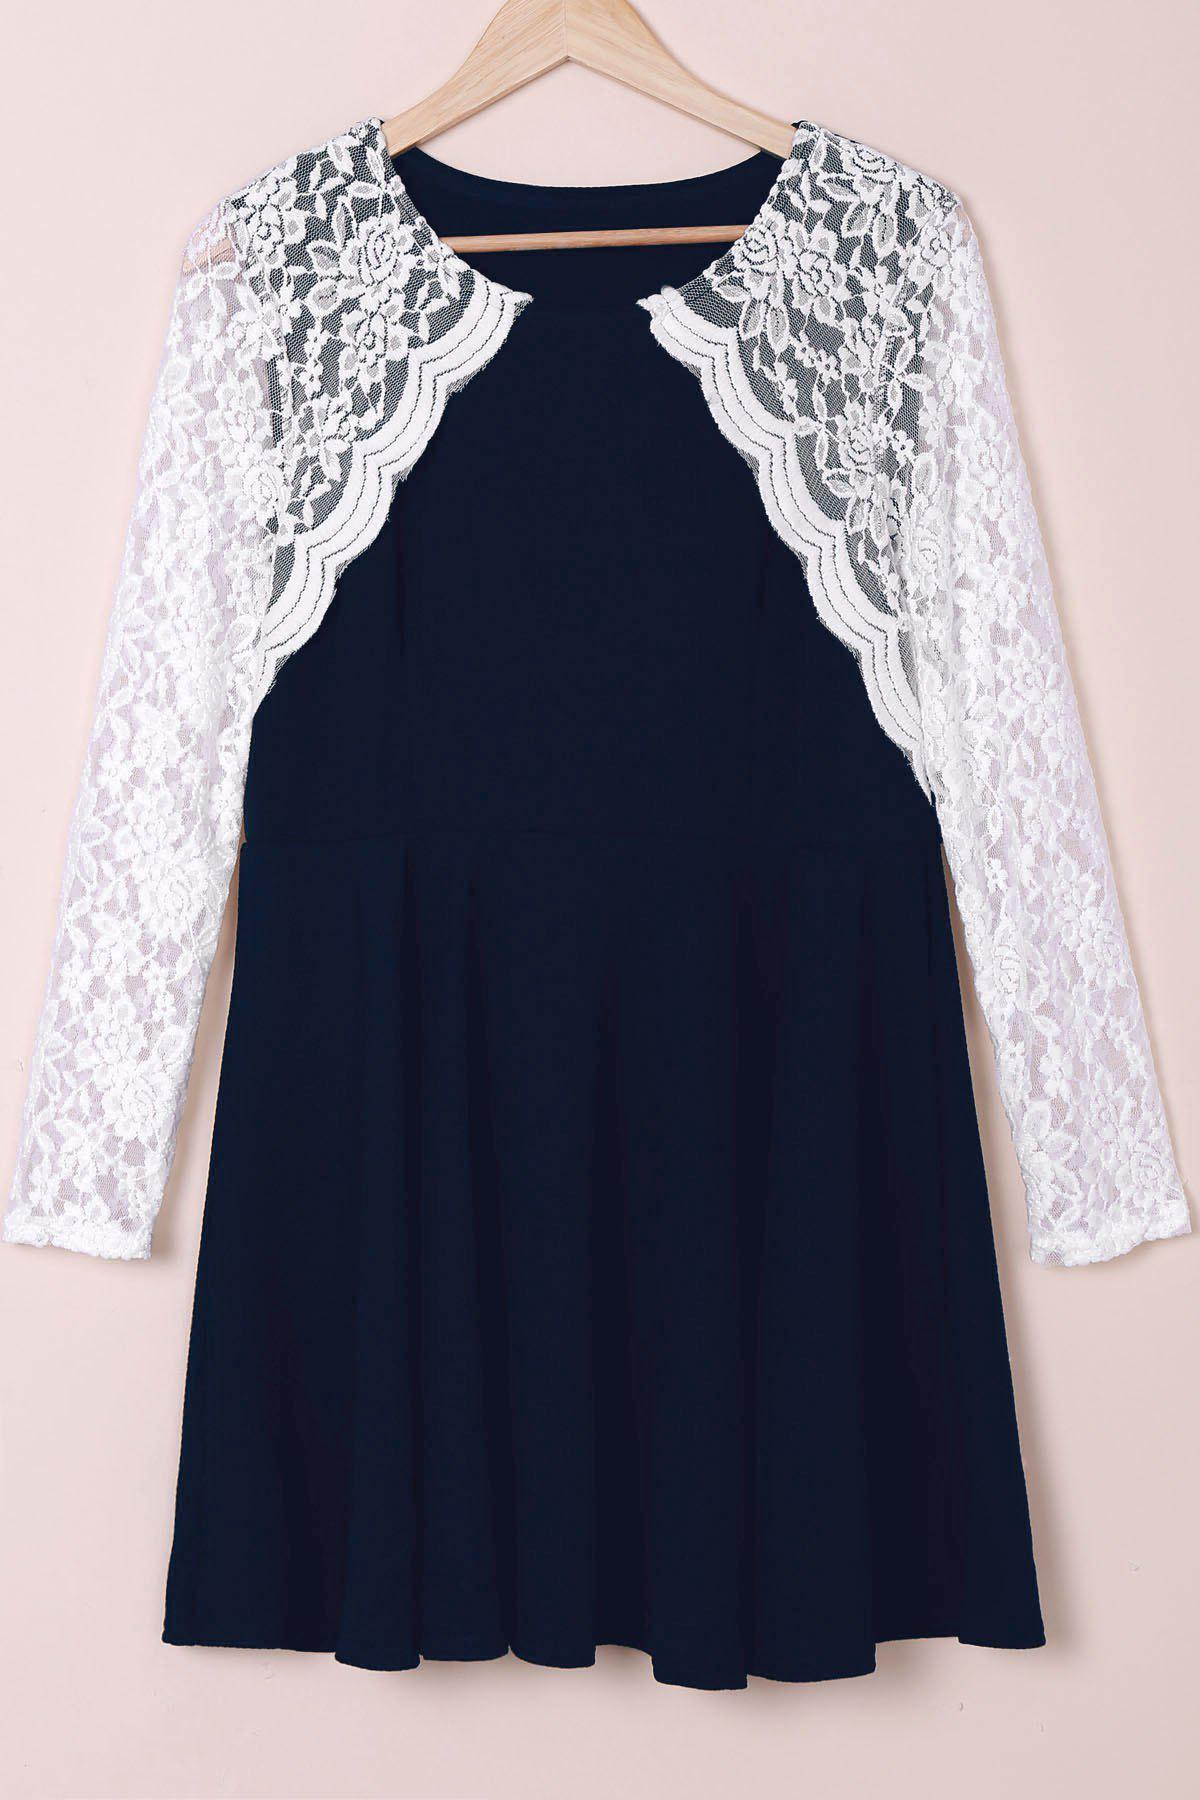 Stylish Round Collar Lace Splicing Plus Size Long Sleeve Women's Dress - DEEP BLUE 2XL